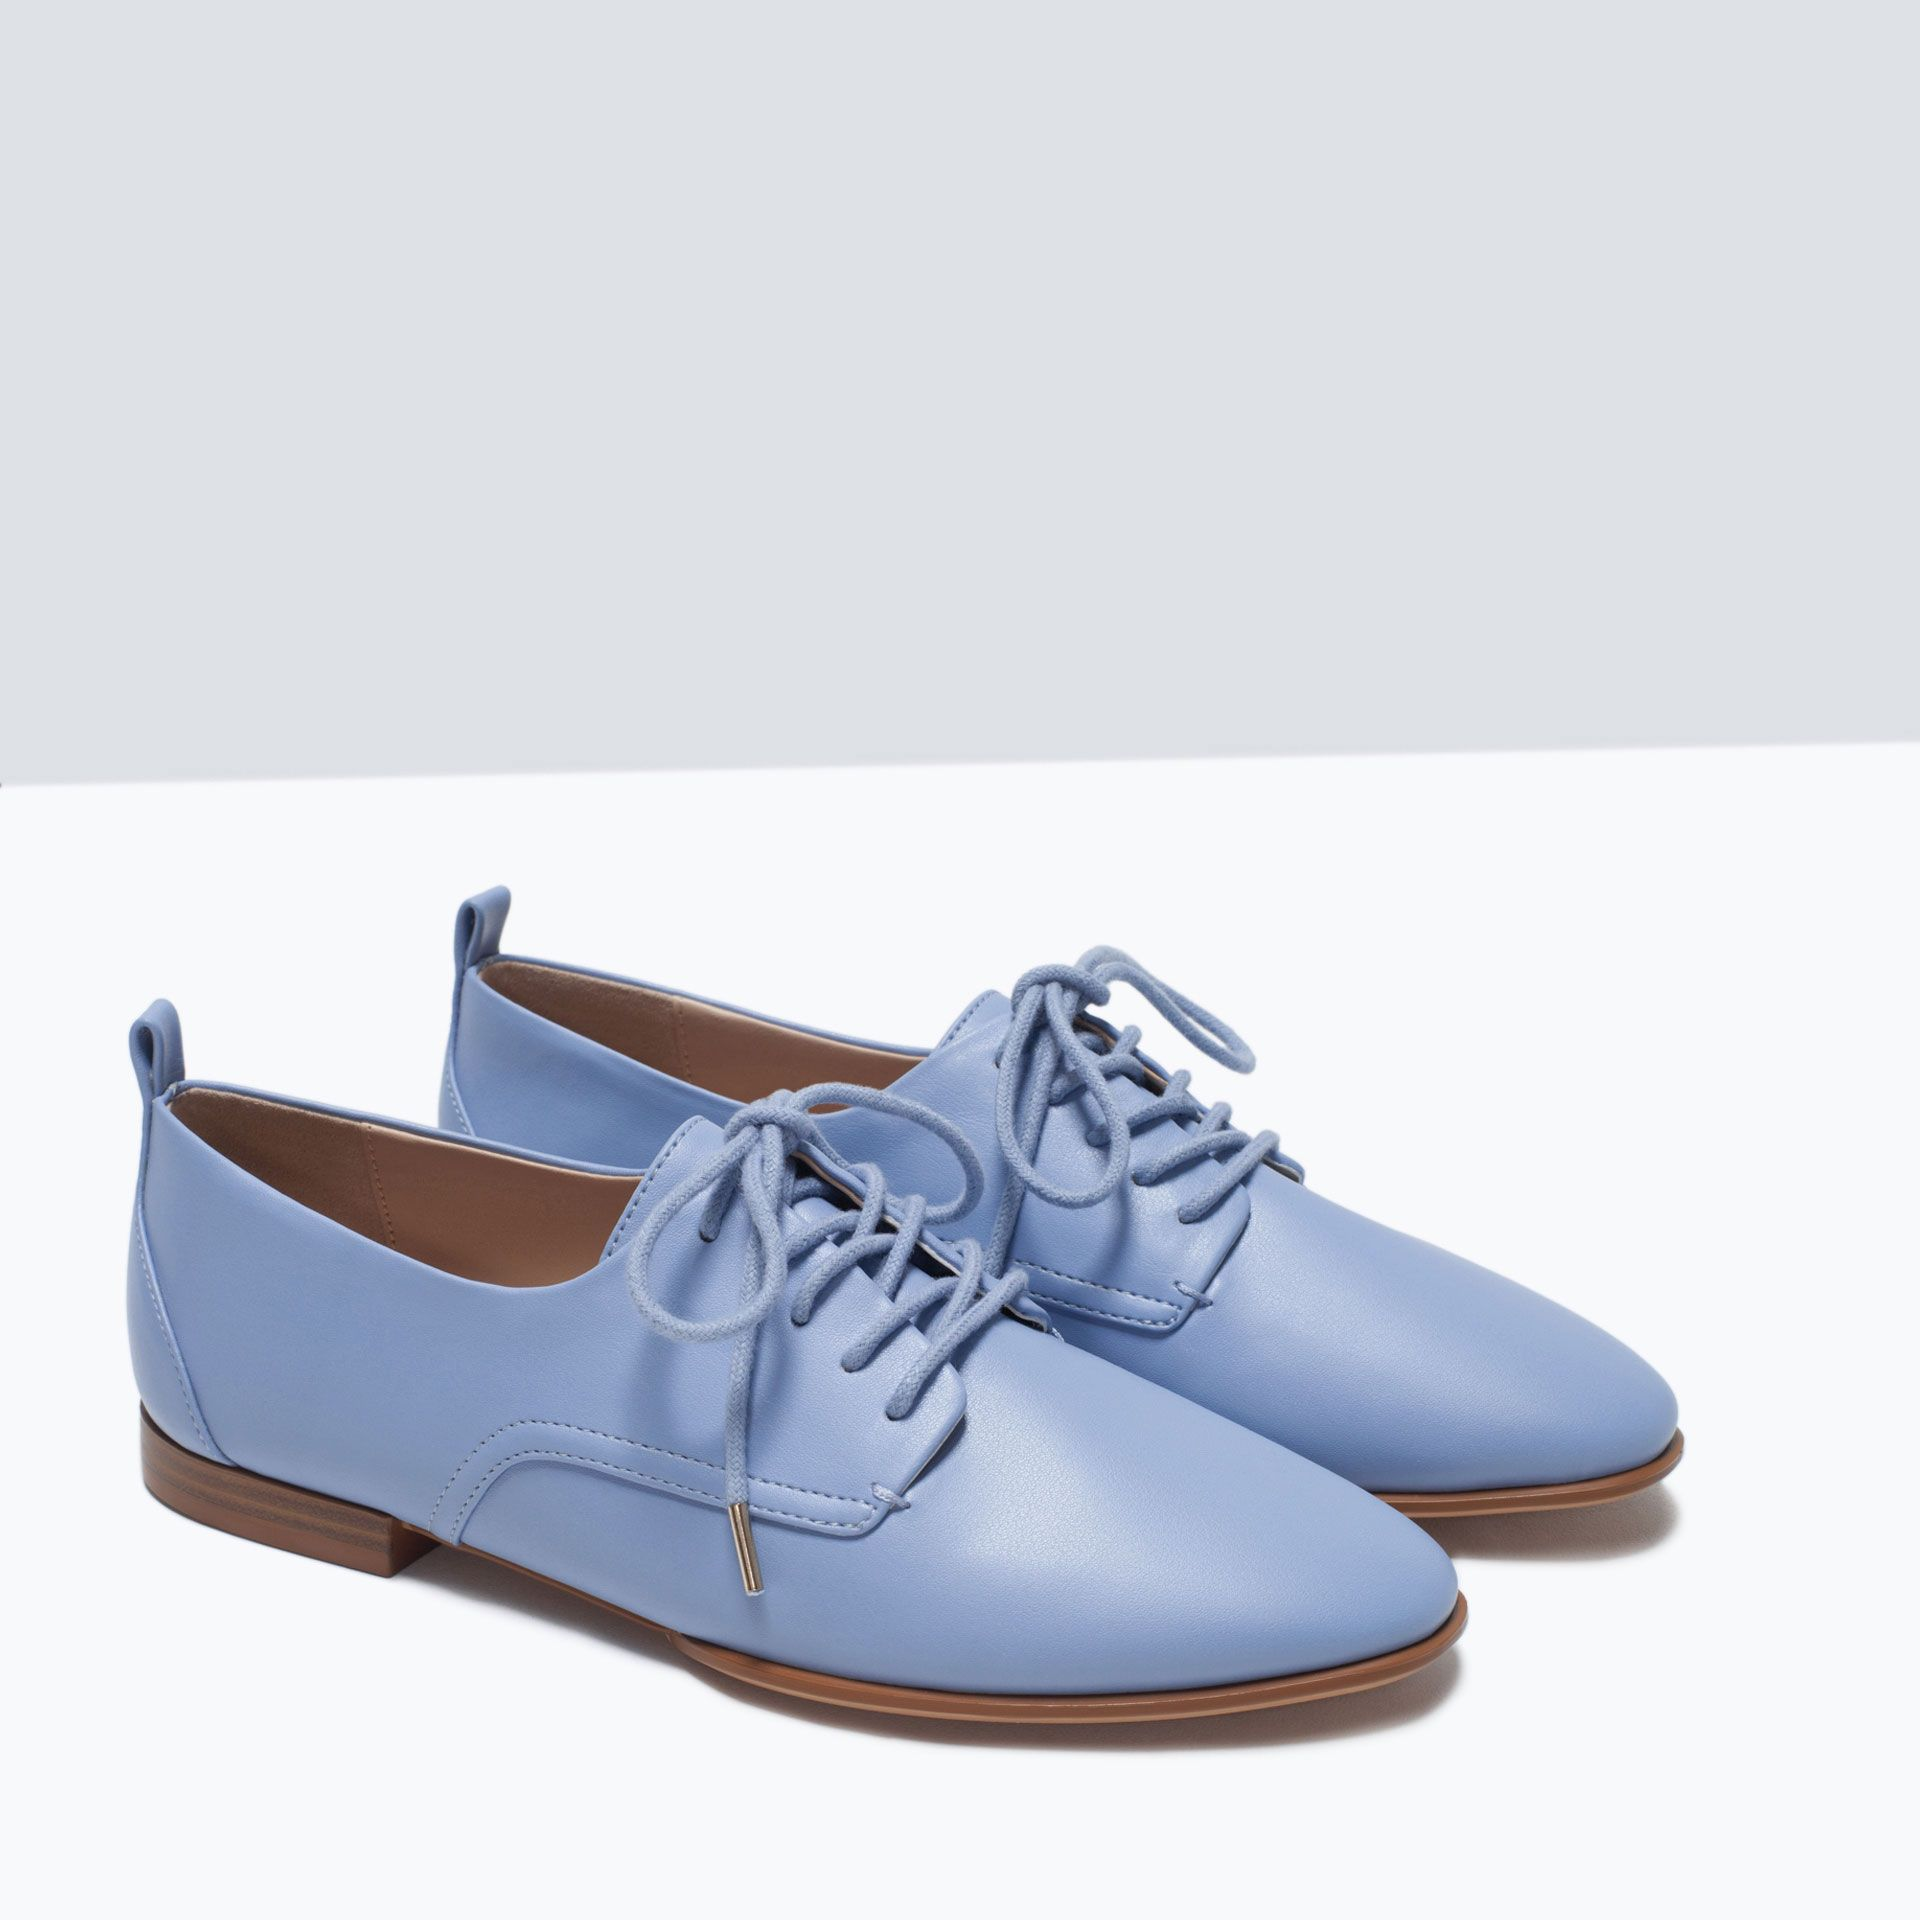 ZARA - SHOES & BAGS - SOFT BLUCHER